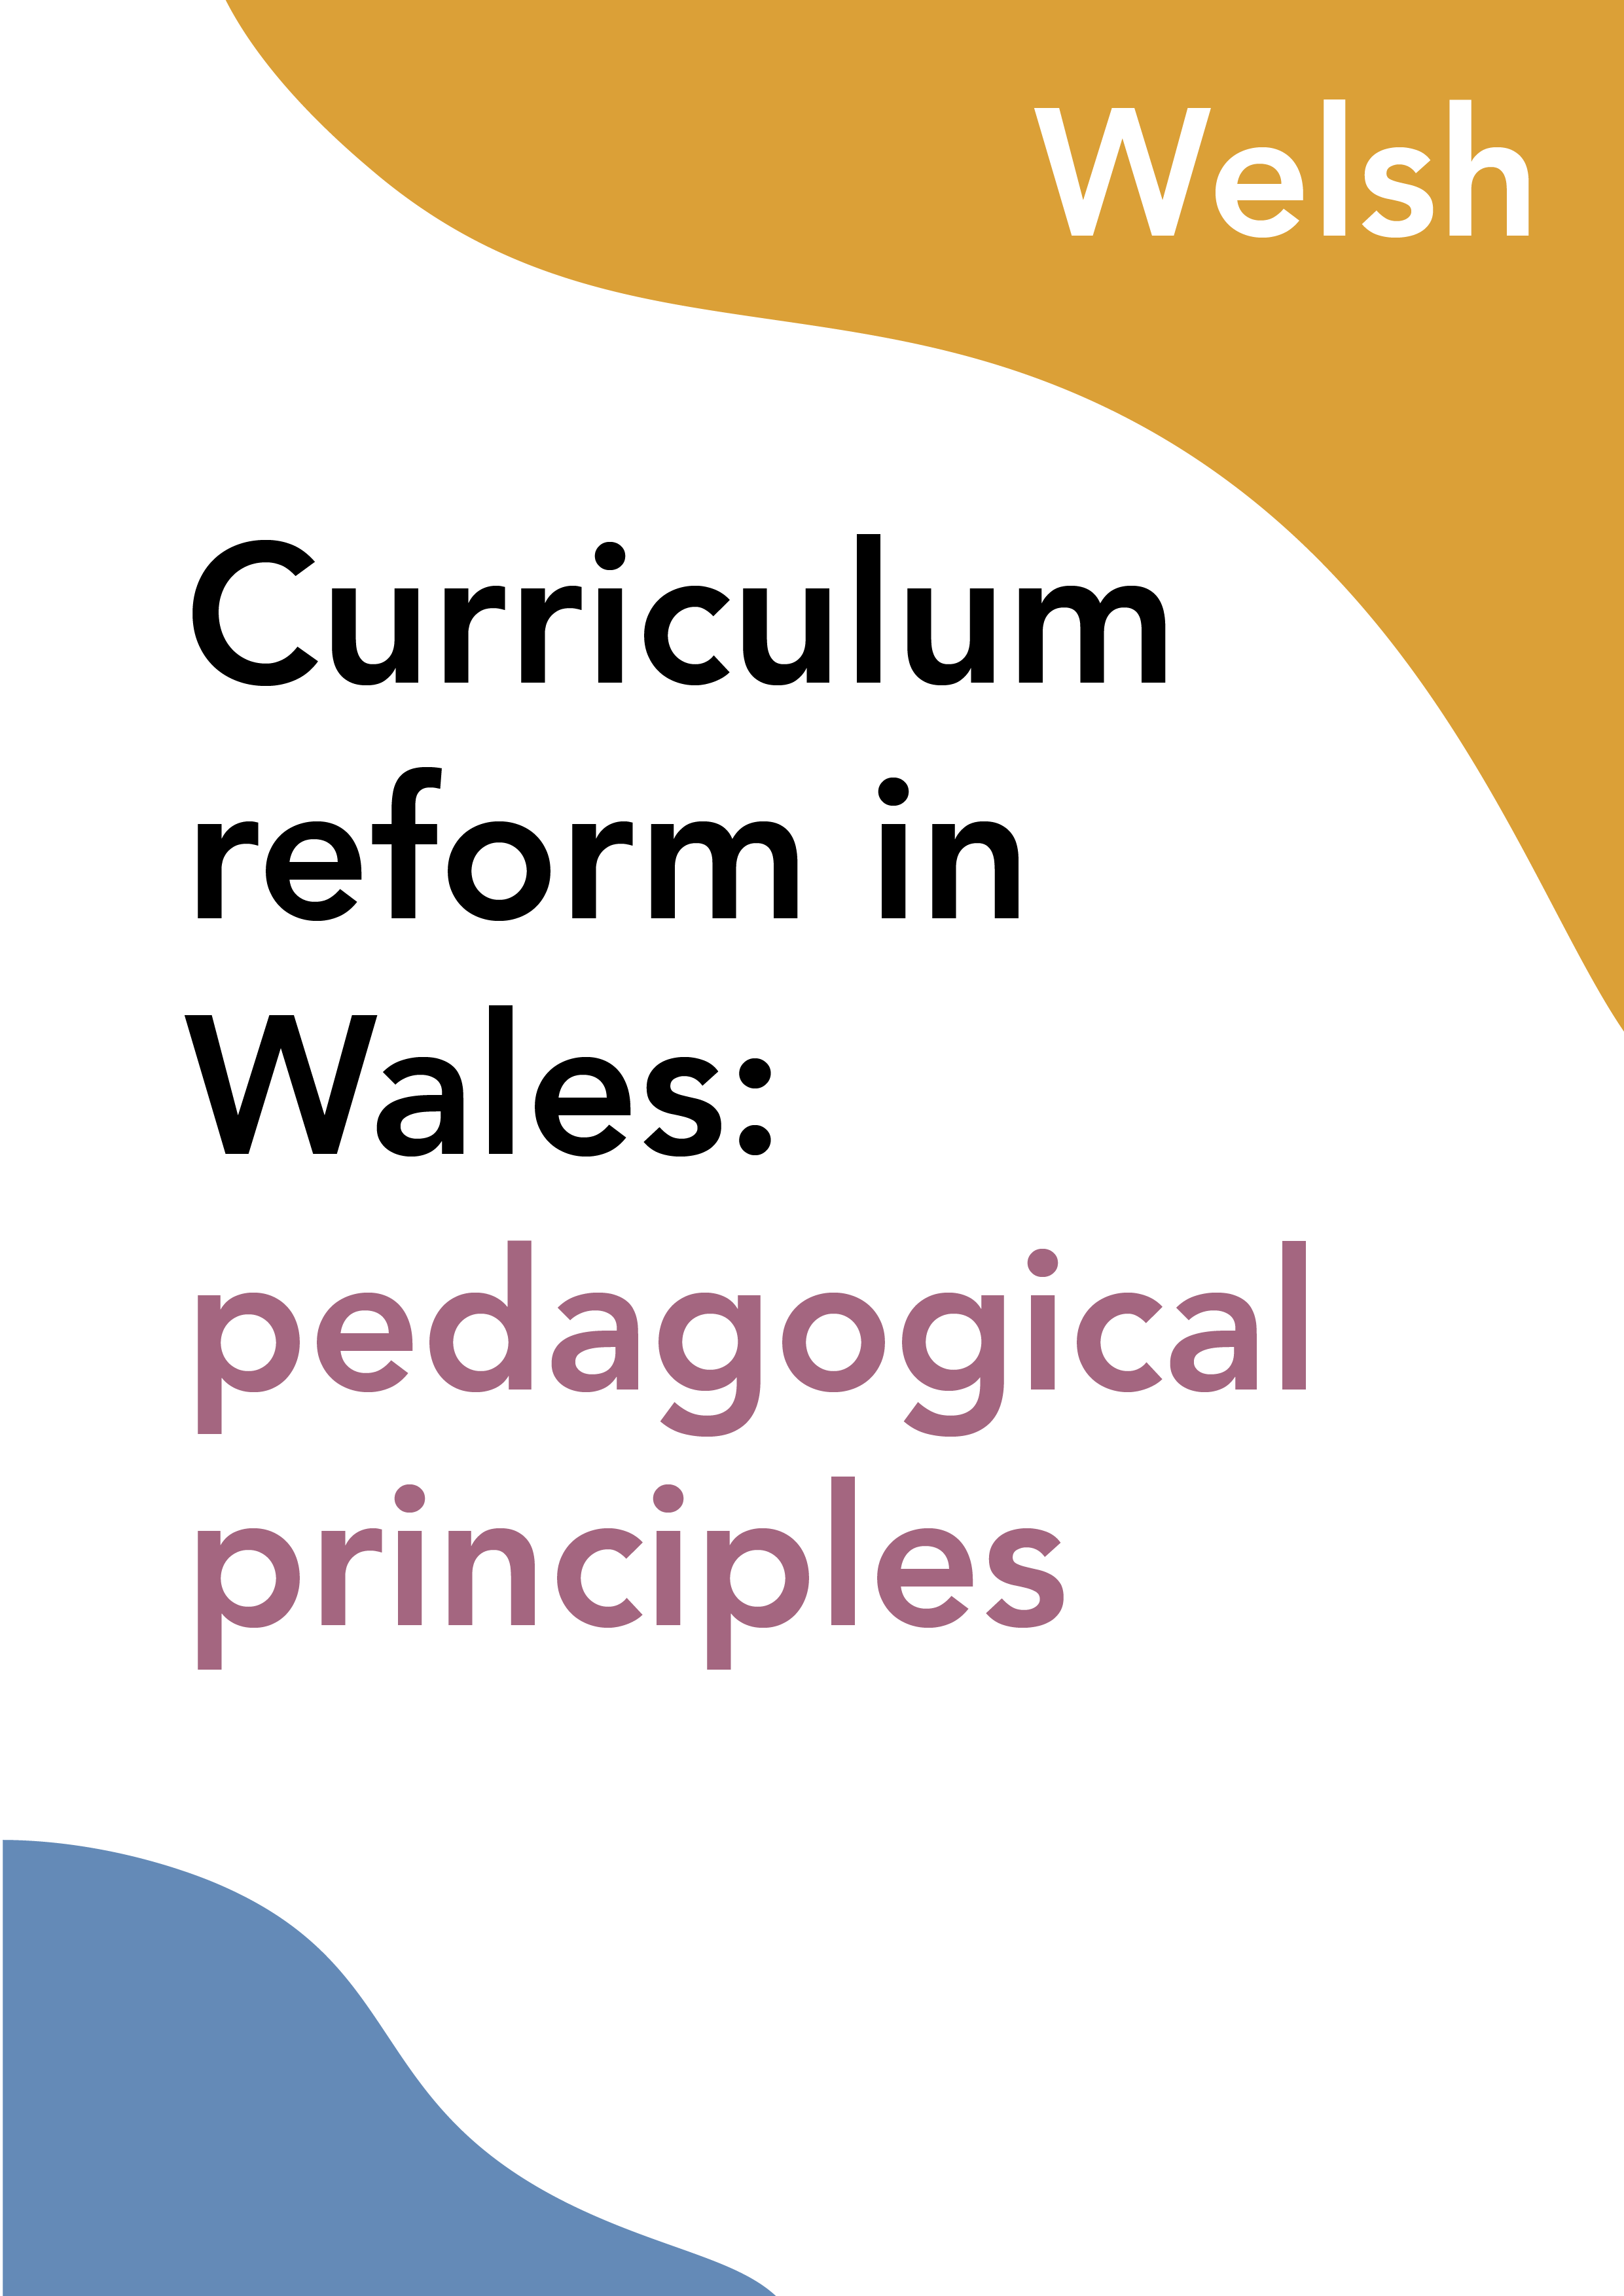 Curriculum reform in Wales: pedagogical principles (Welsh)